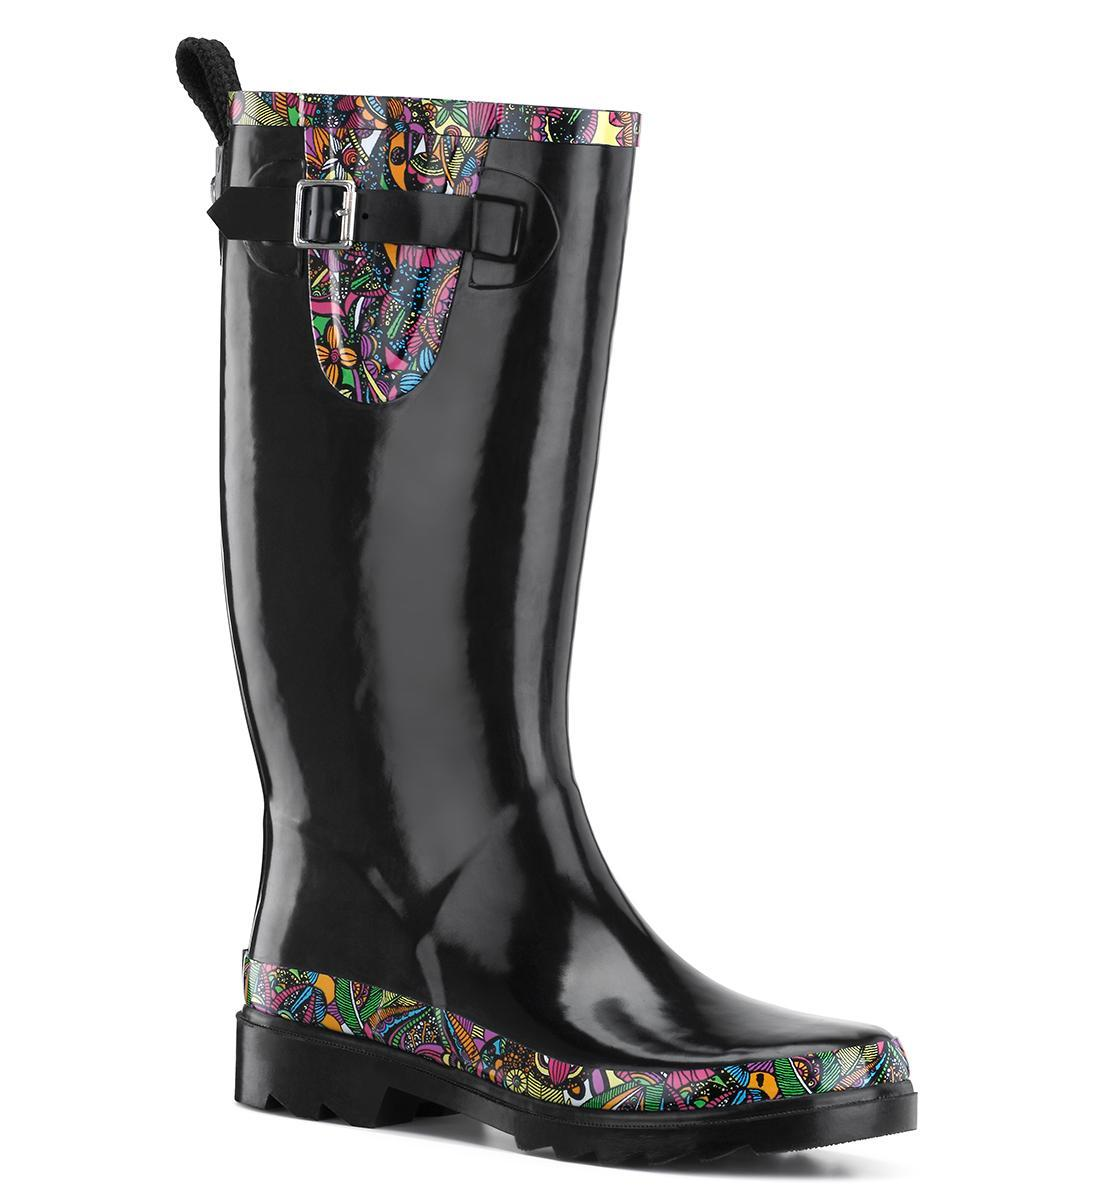 Grc Jas Hujan Sepatu Hitam Daftar Harga Terbaru Dan Terupdate Kalibre Shoes Cover Rain 995010 000 Indonesia Source Funcover Cosh Untuk Sakroots Rhythm Rainboots Black With Rainbow Spirit Desert